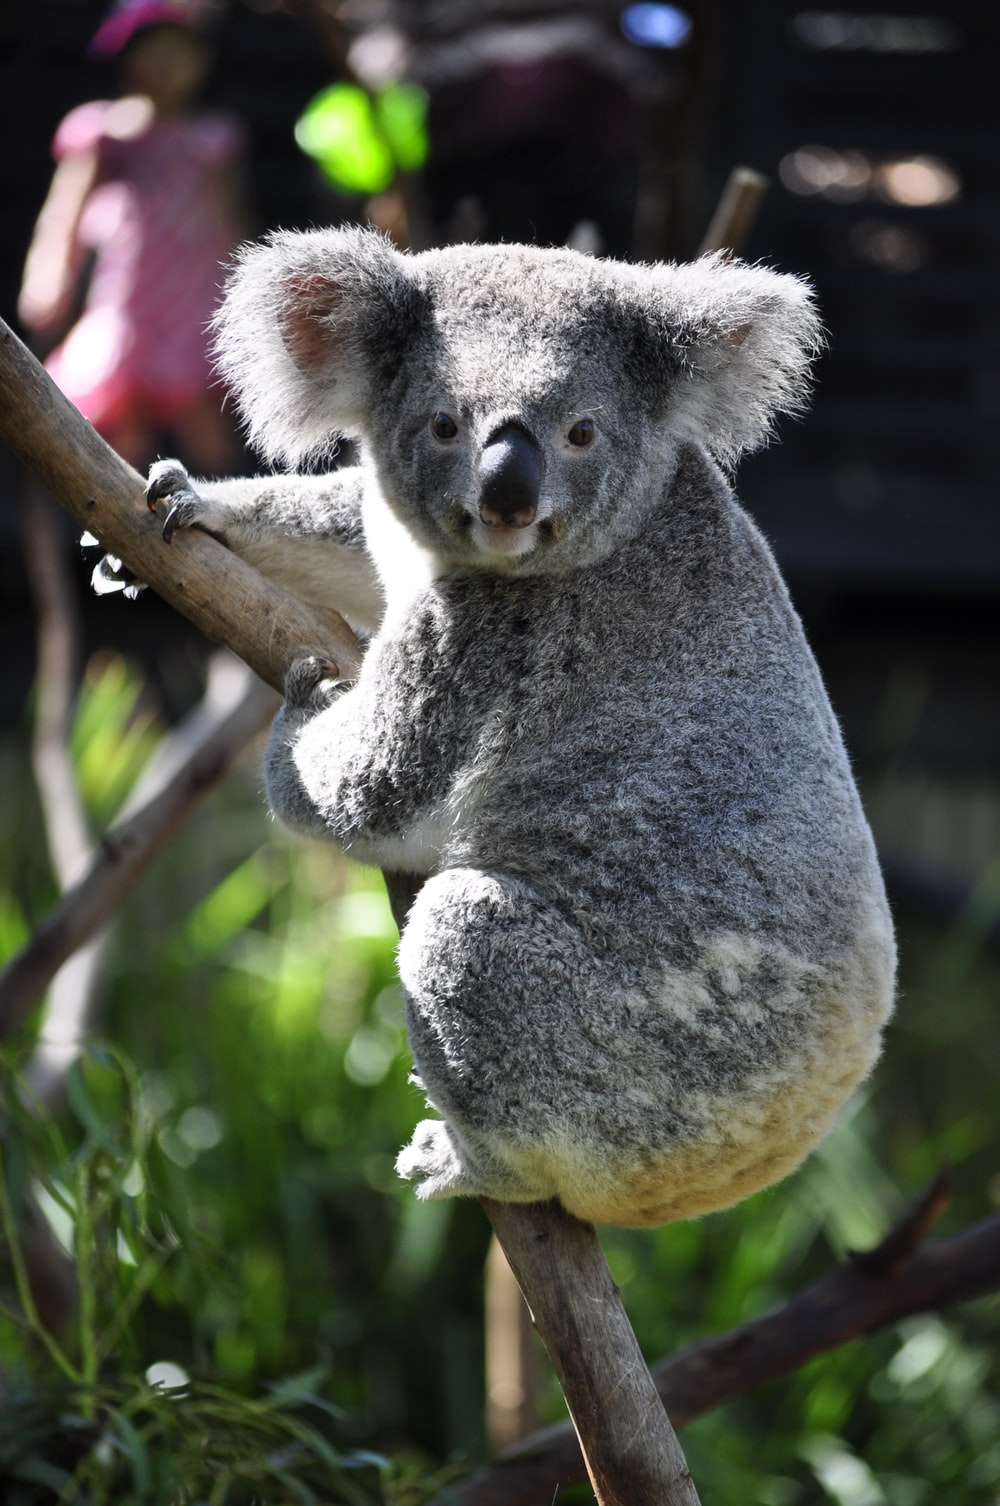 koala on tree branch during daytime